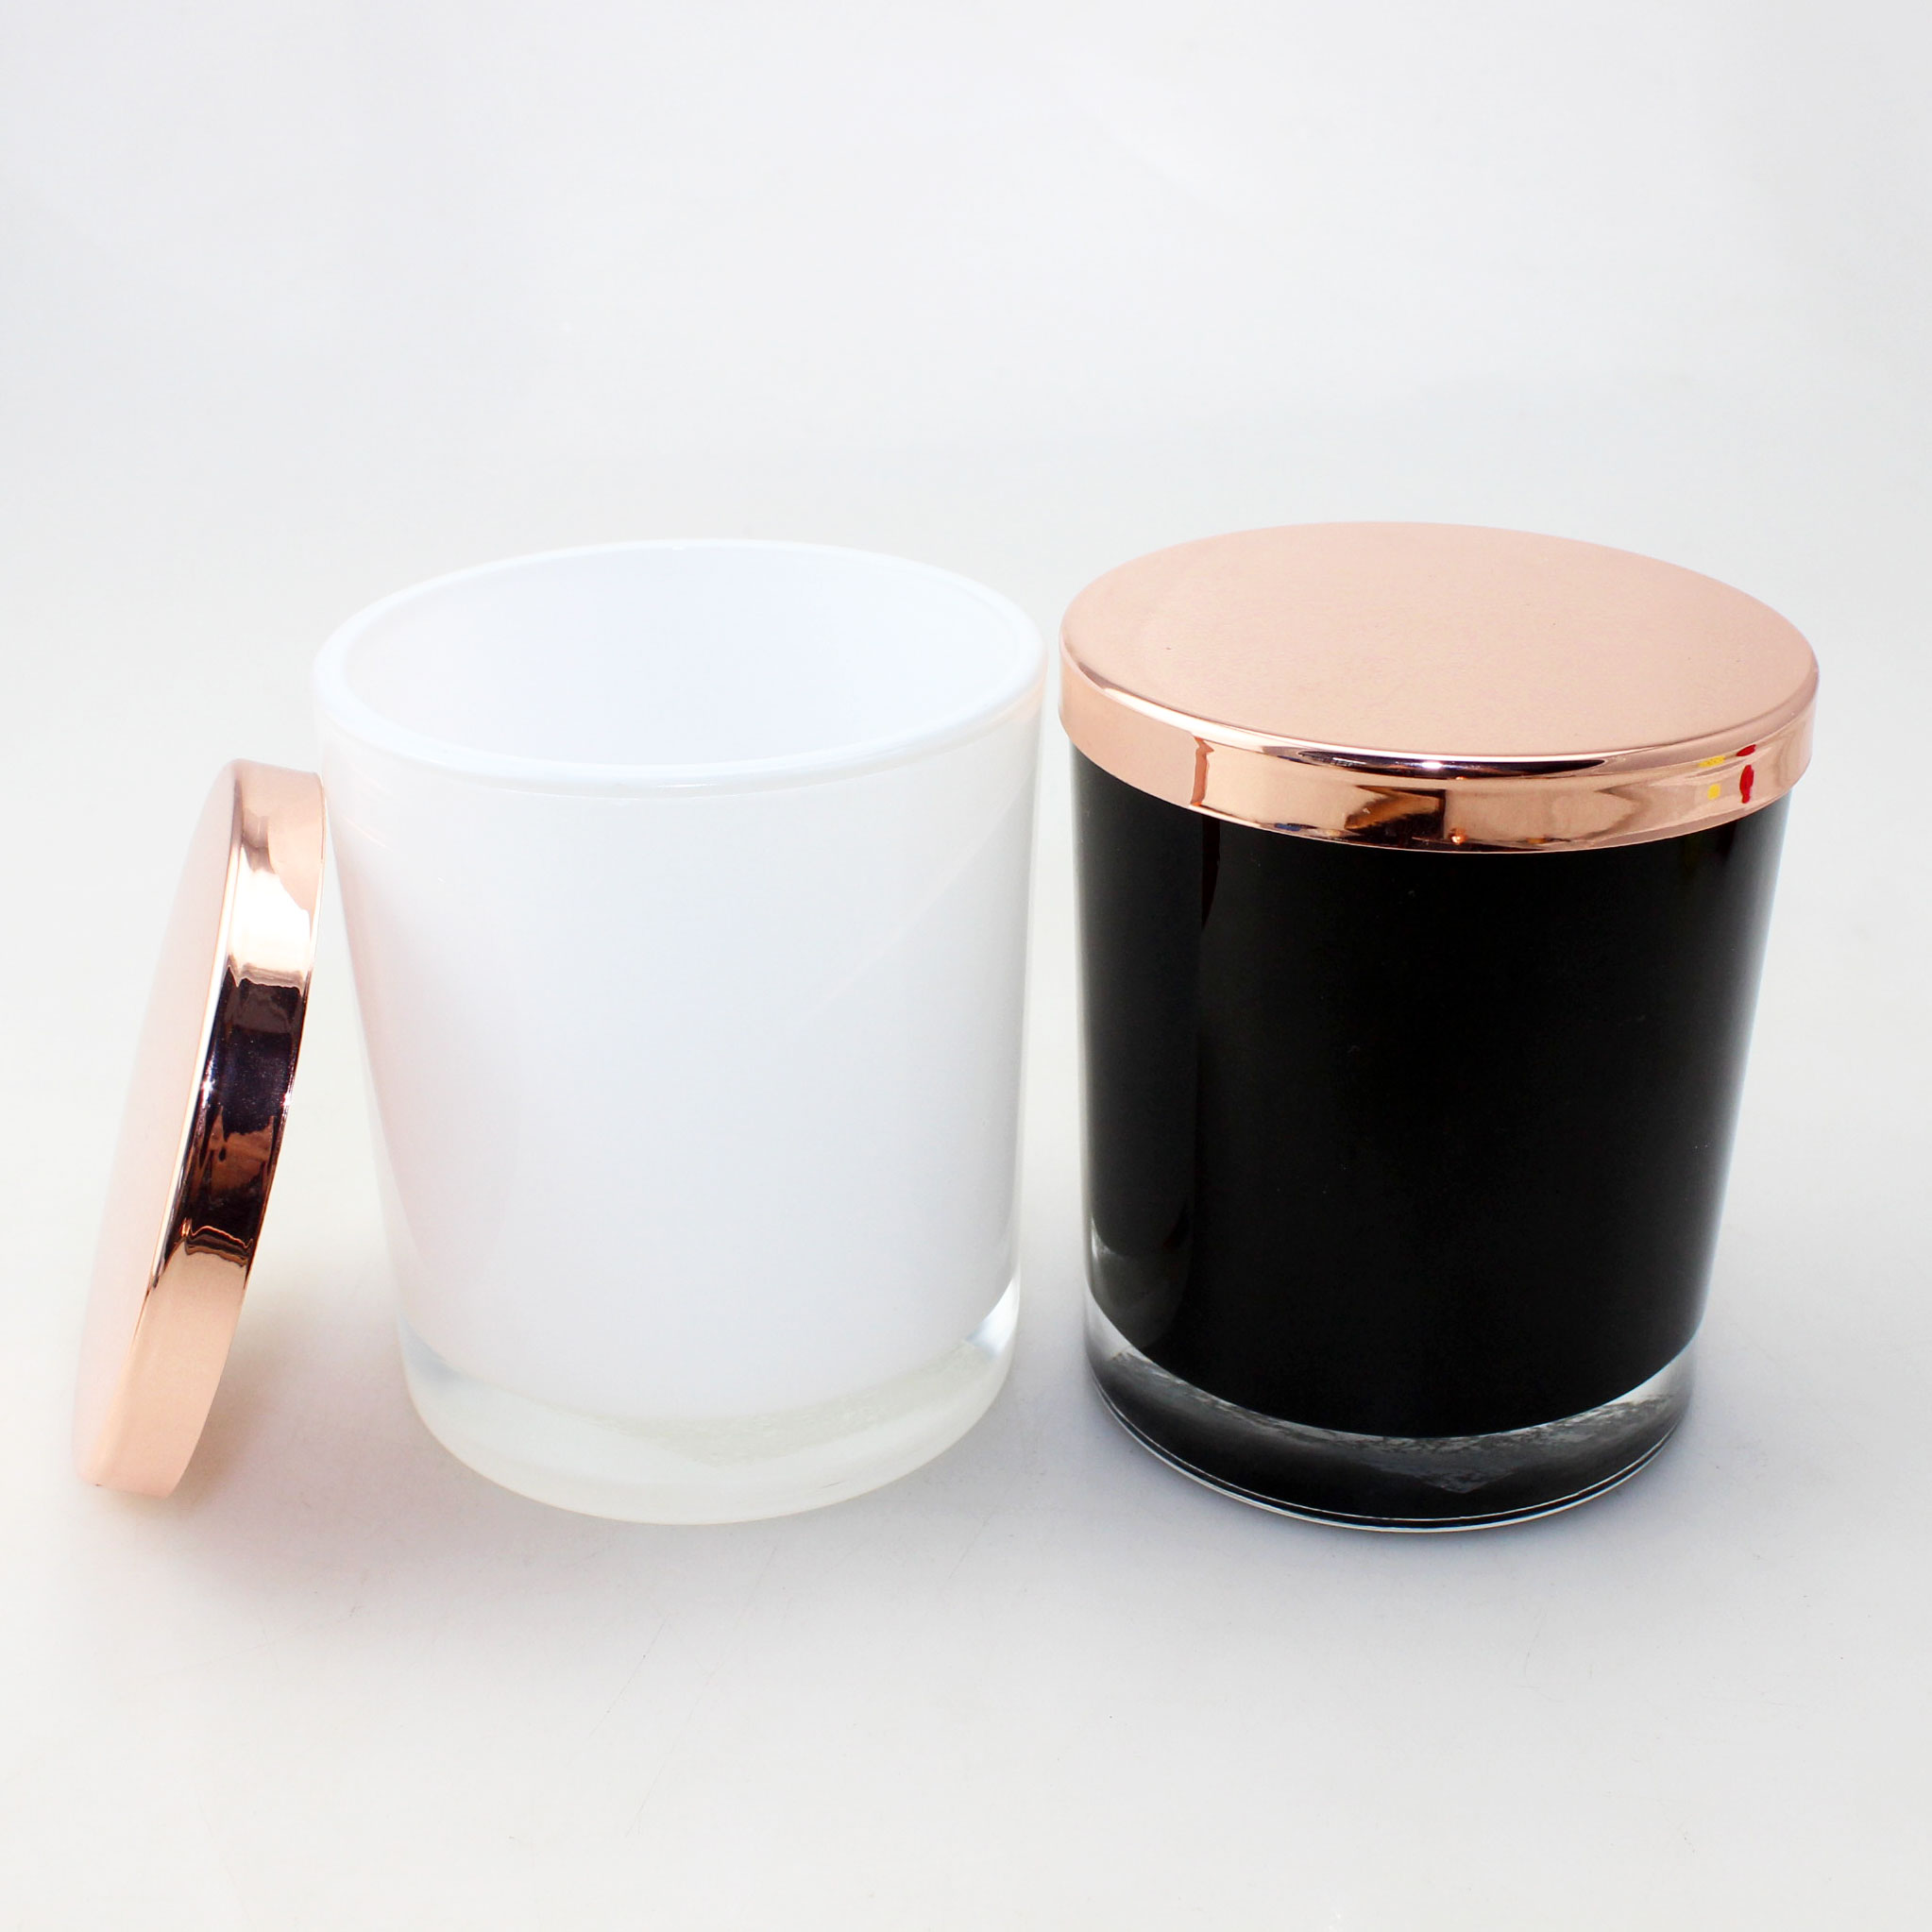 10 oz elegance medium base opaque black oxford jar with rose gold lid